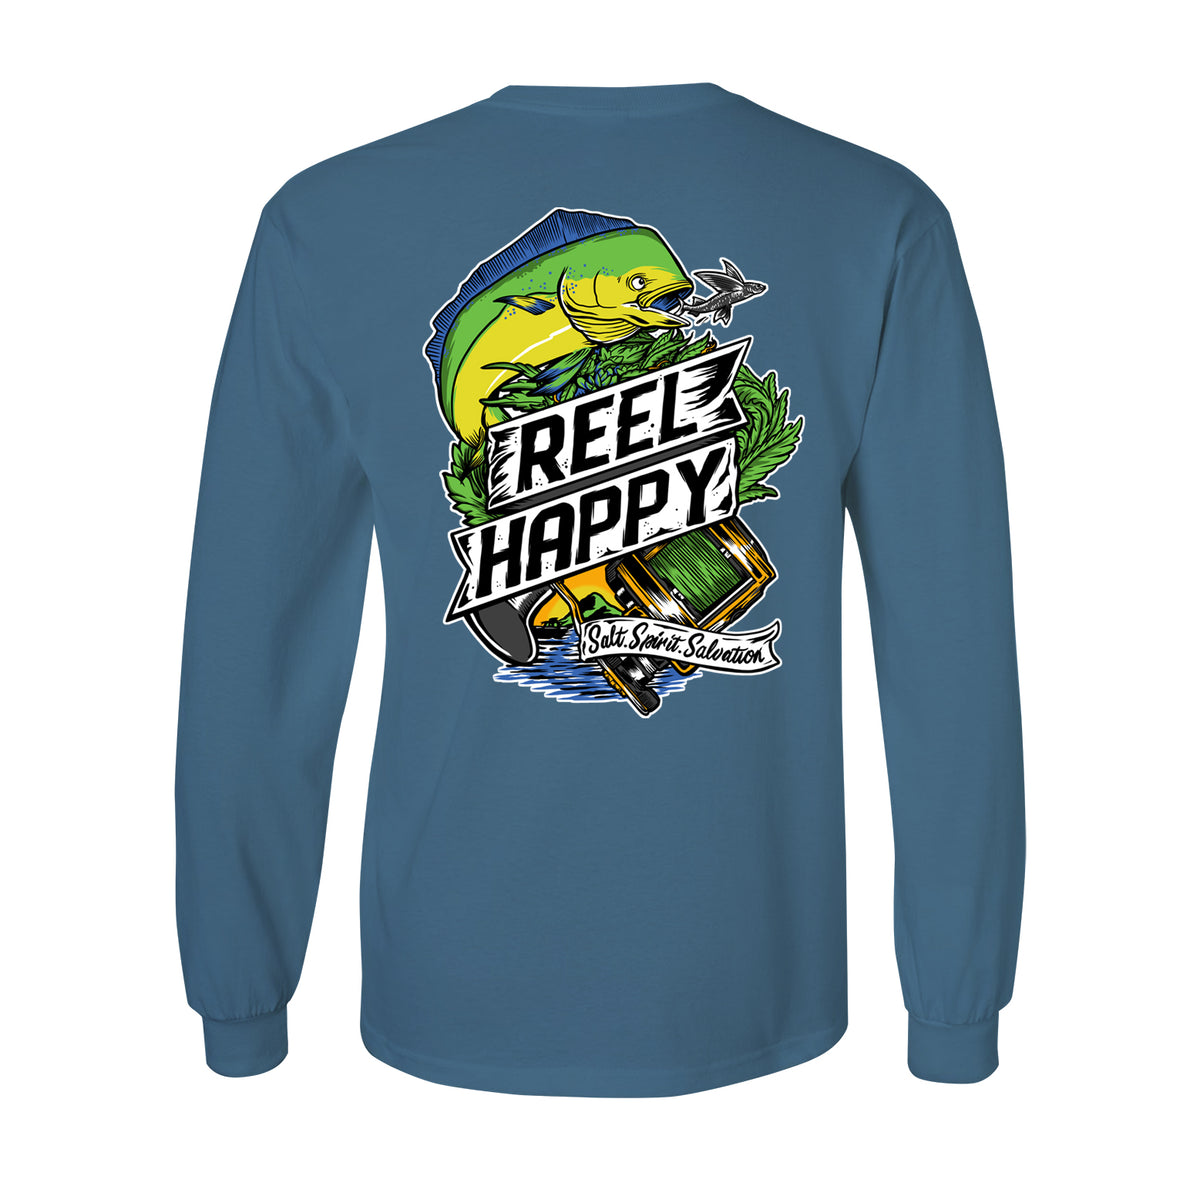 Mahi Mahi LS Tee - Indigo Blue - Reel Happy Co